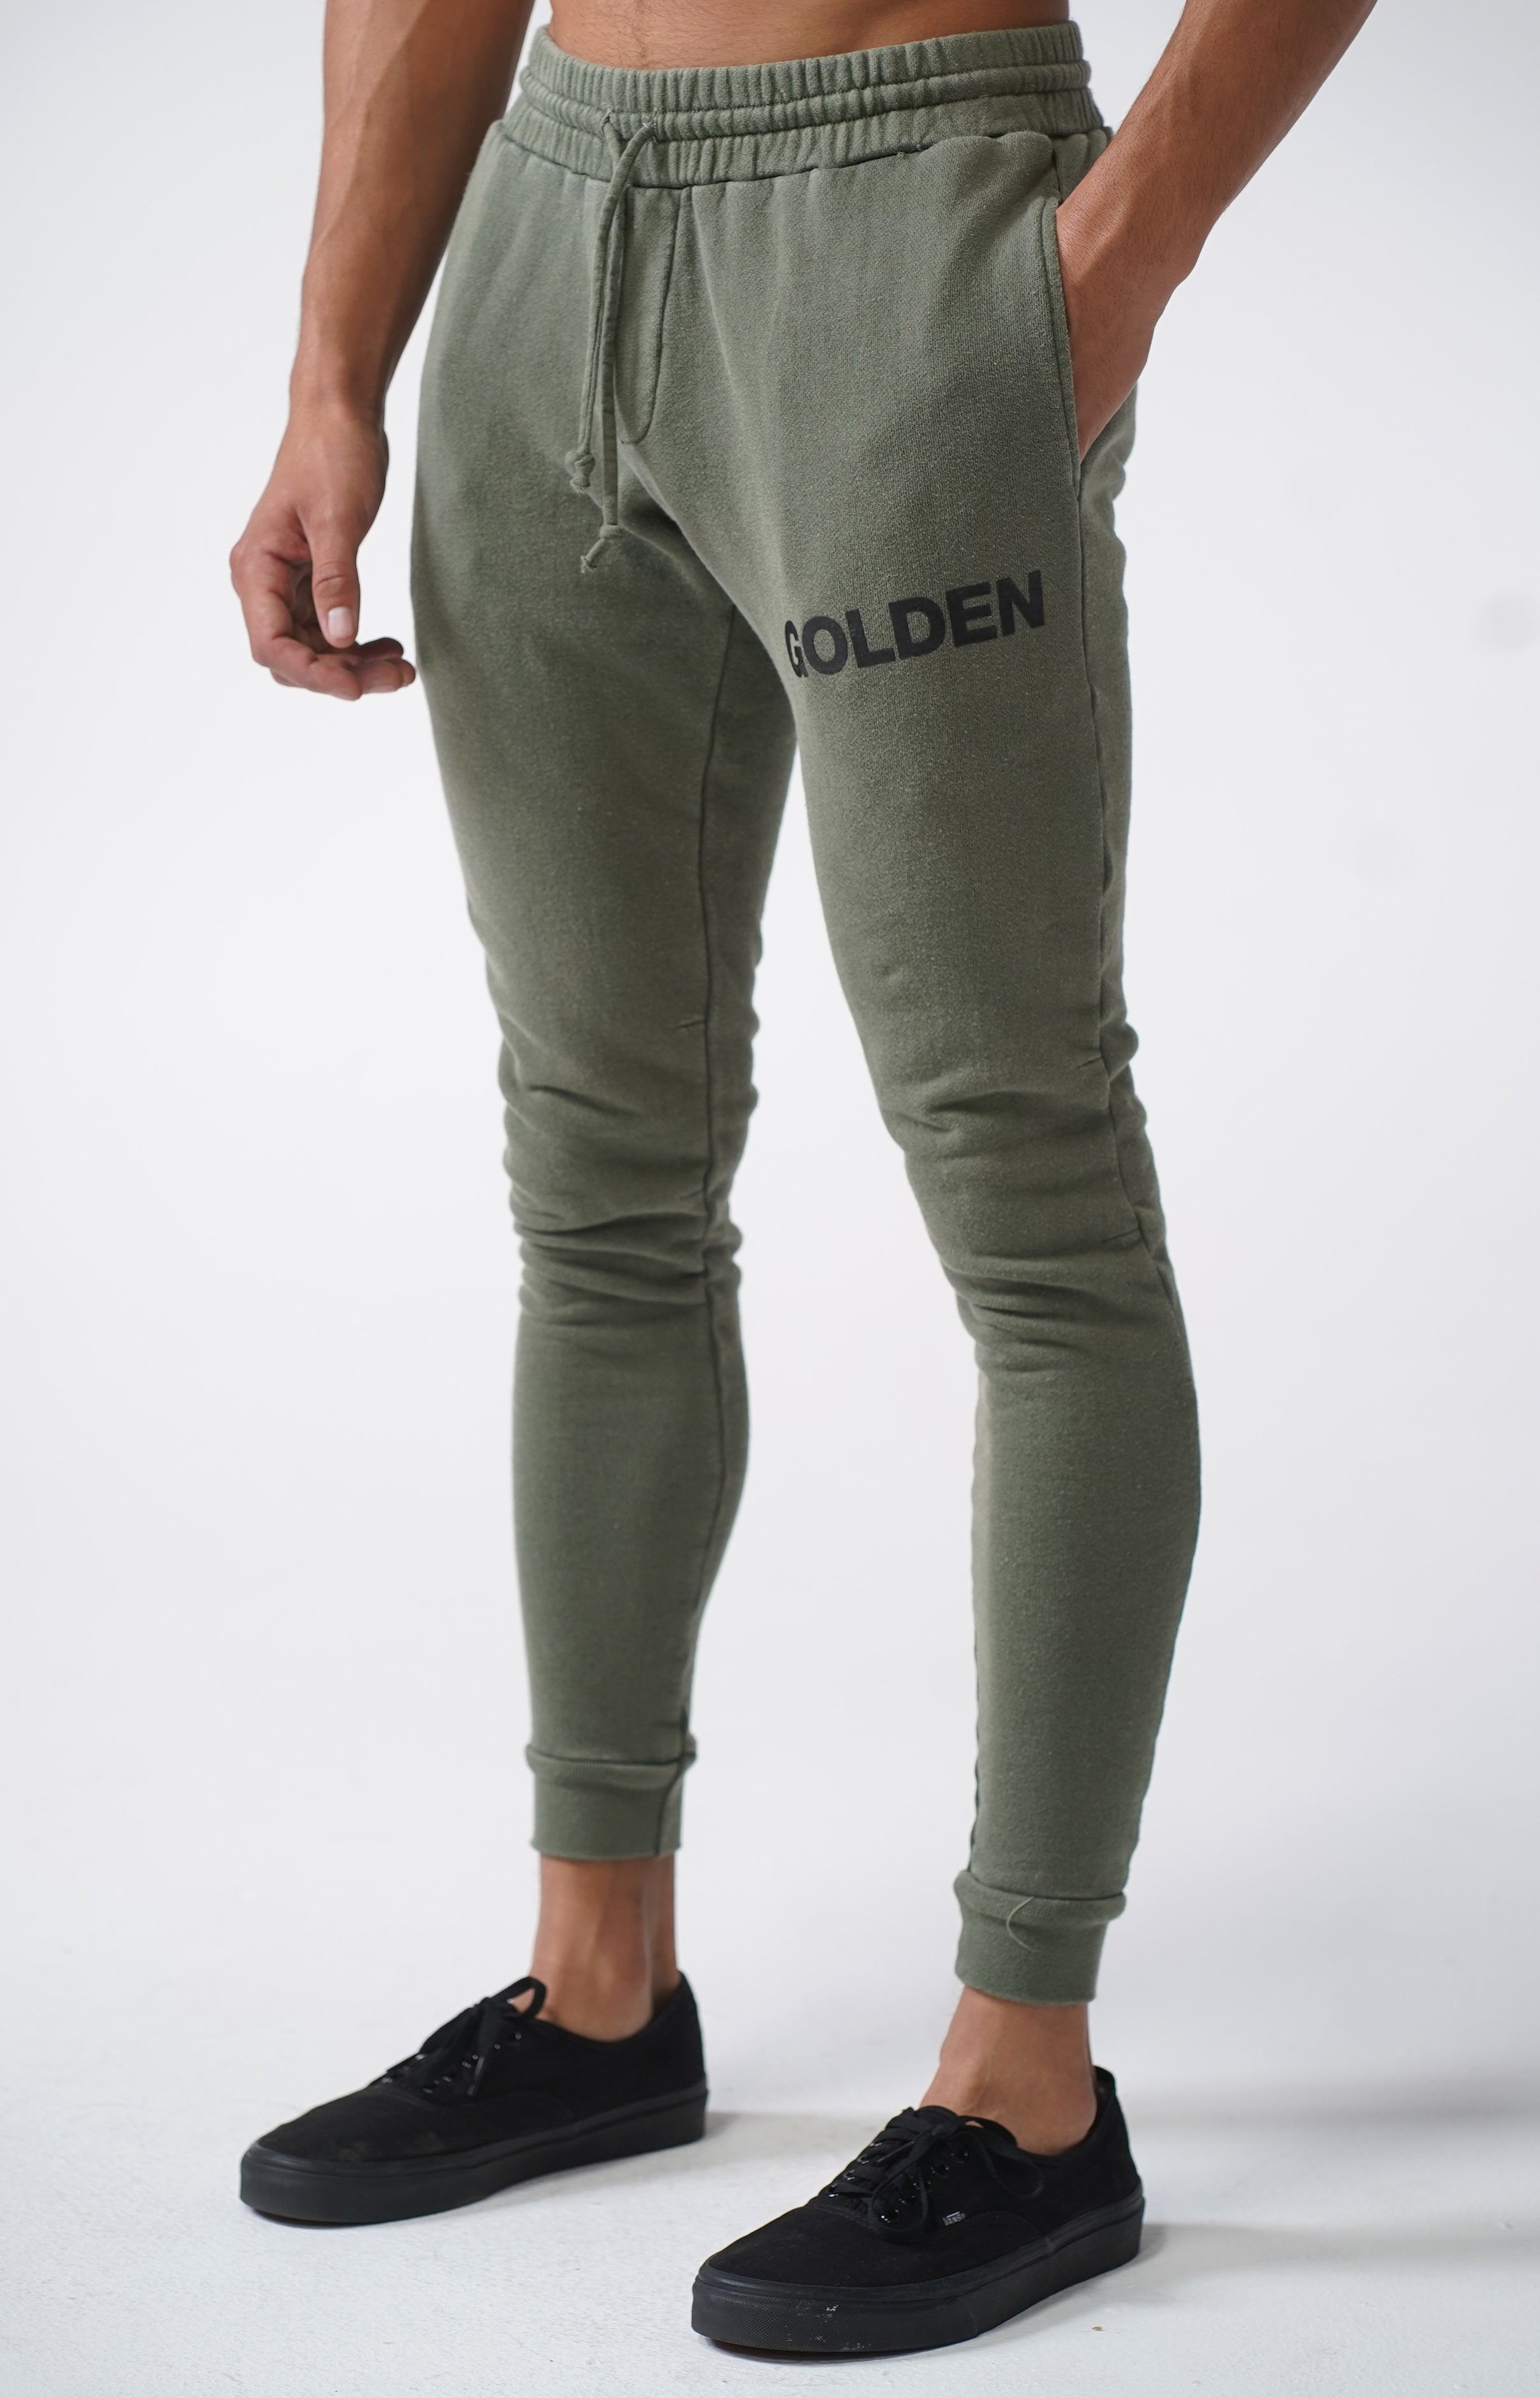 Vintage Army Golden Joggers